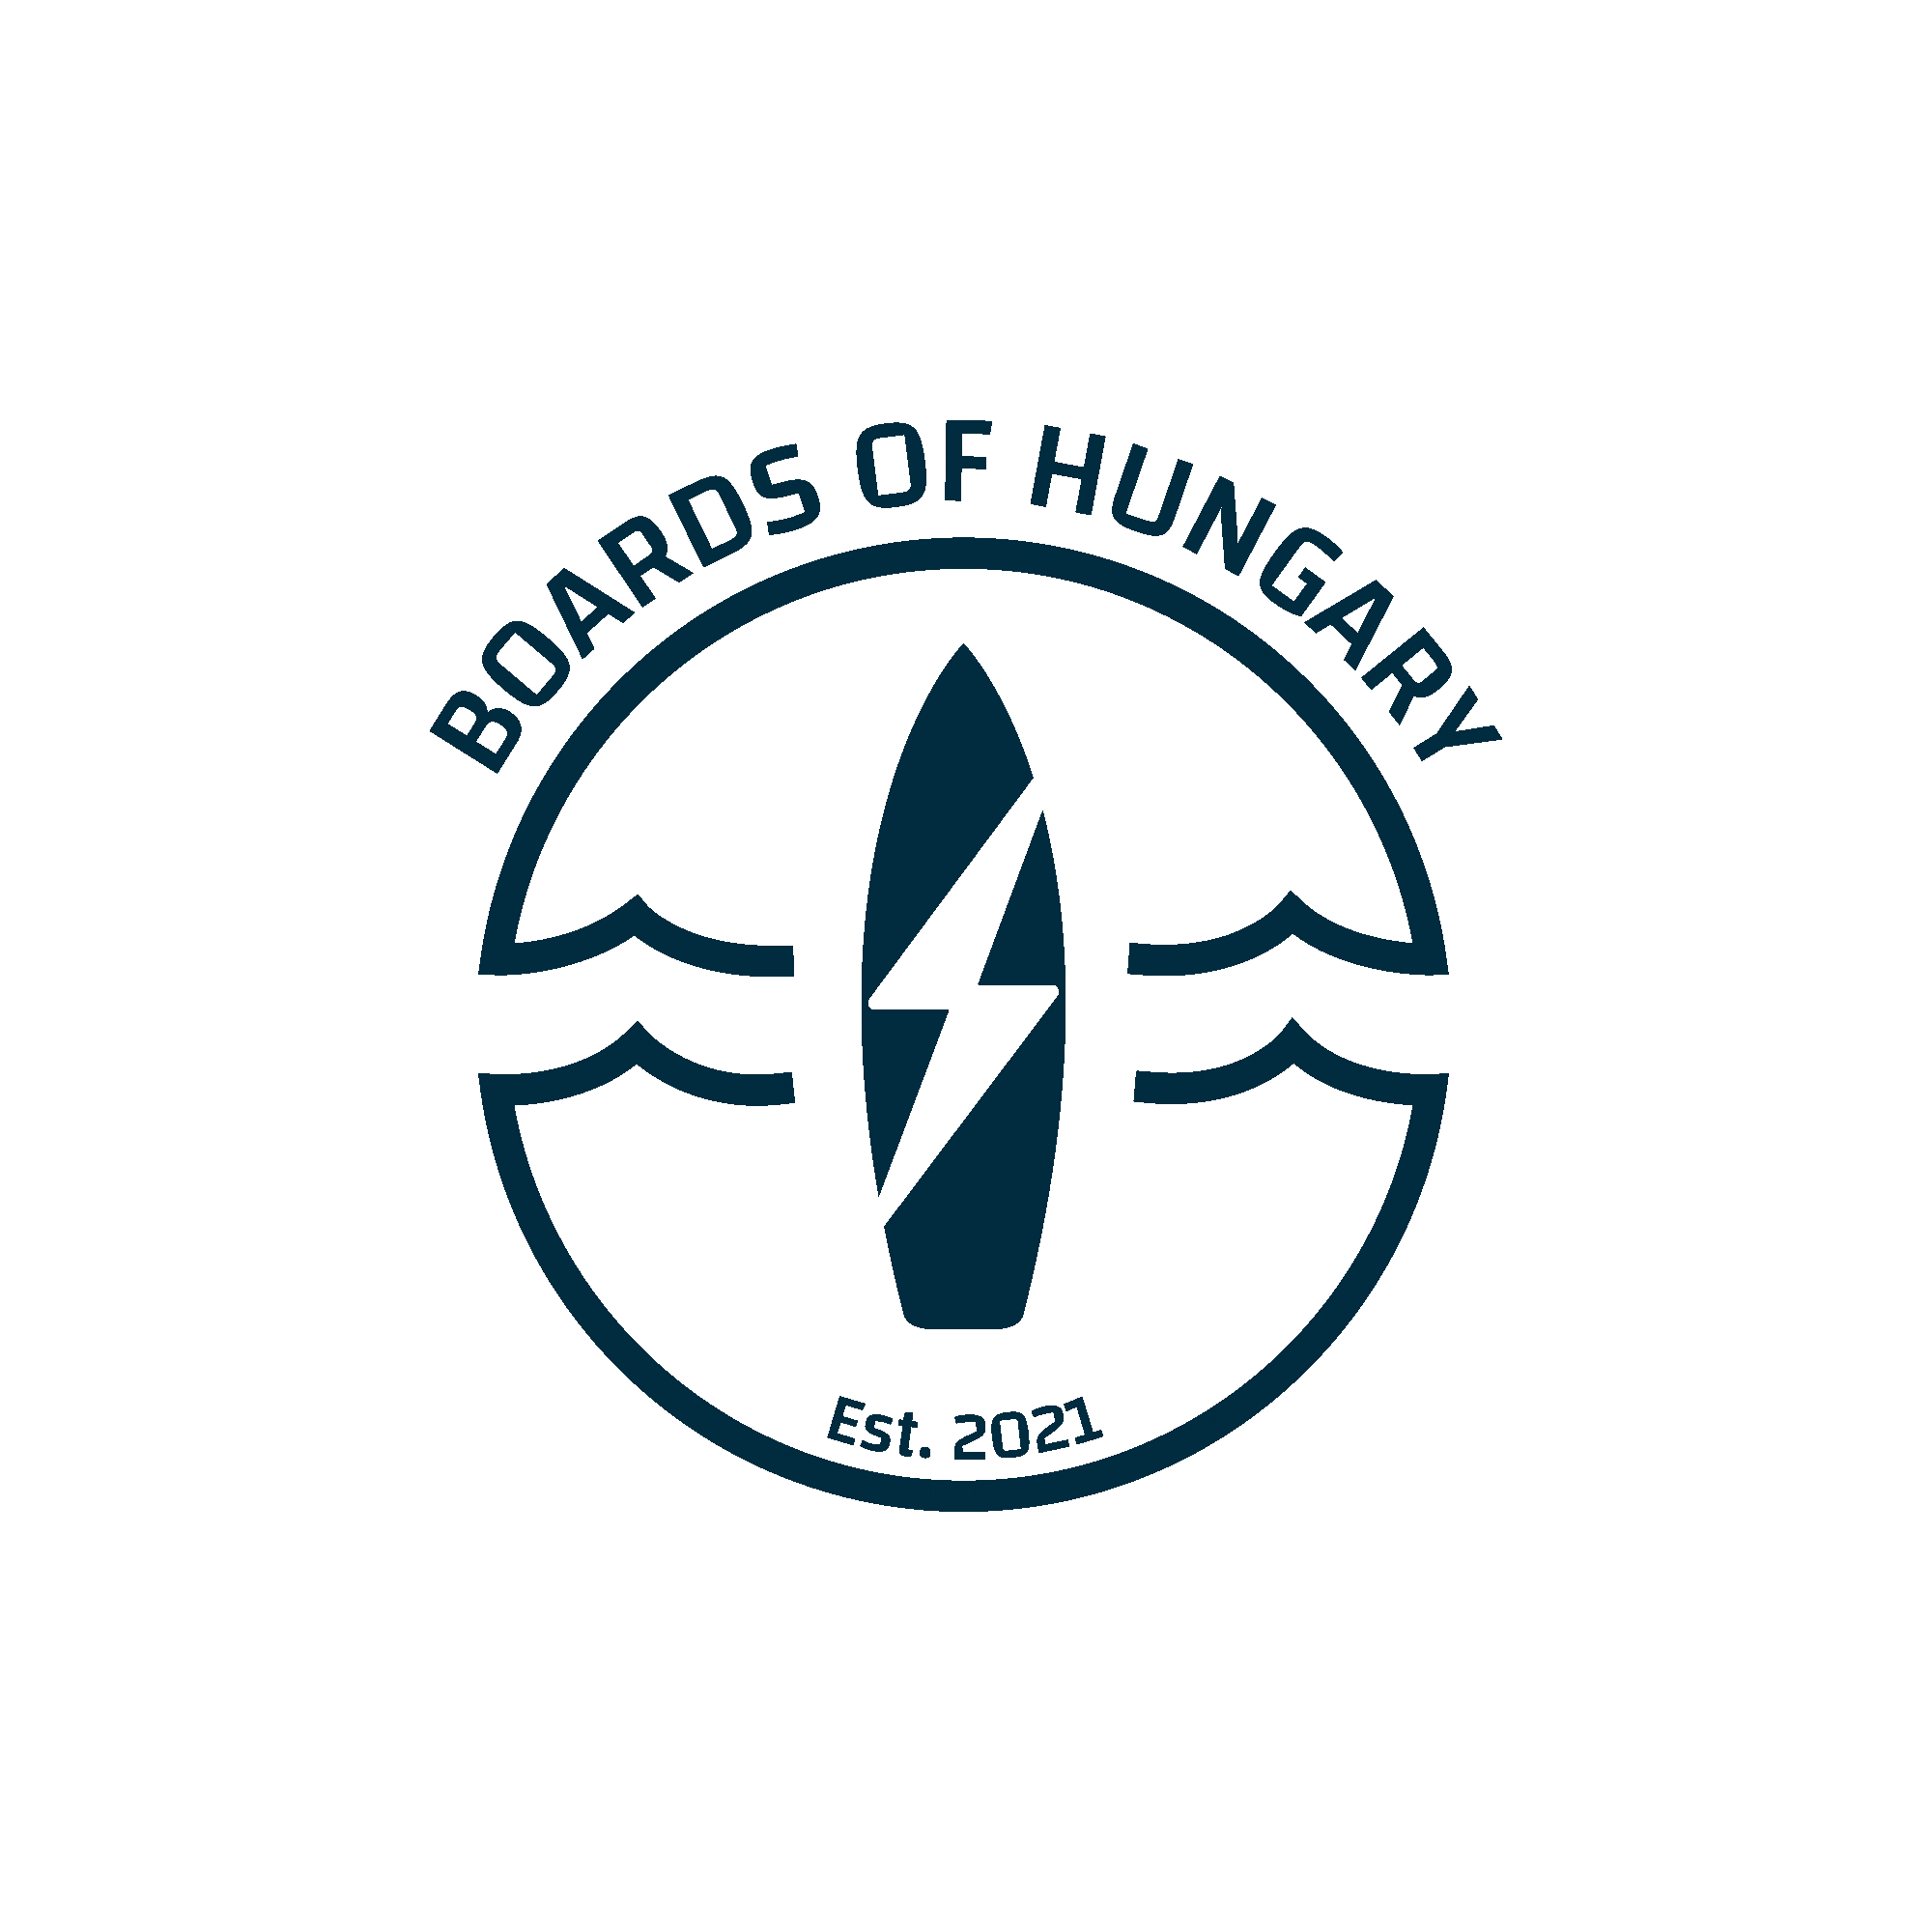 Boards of Hungary